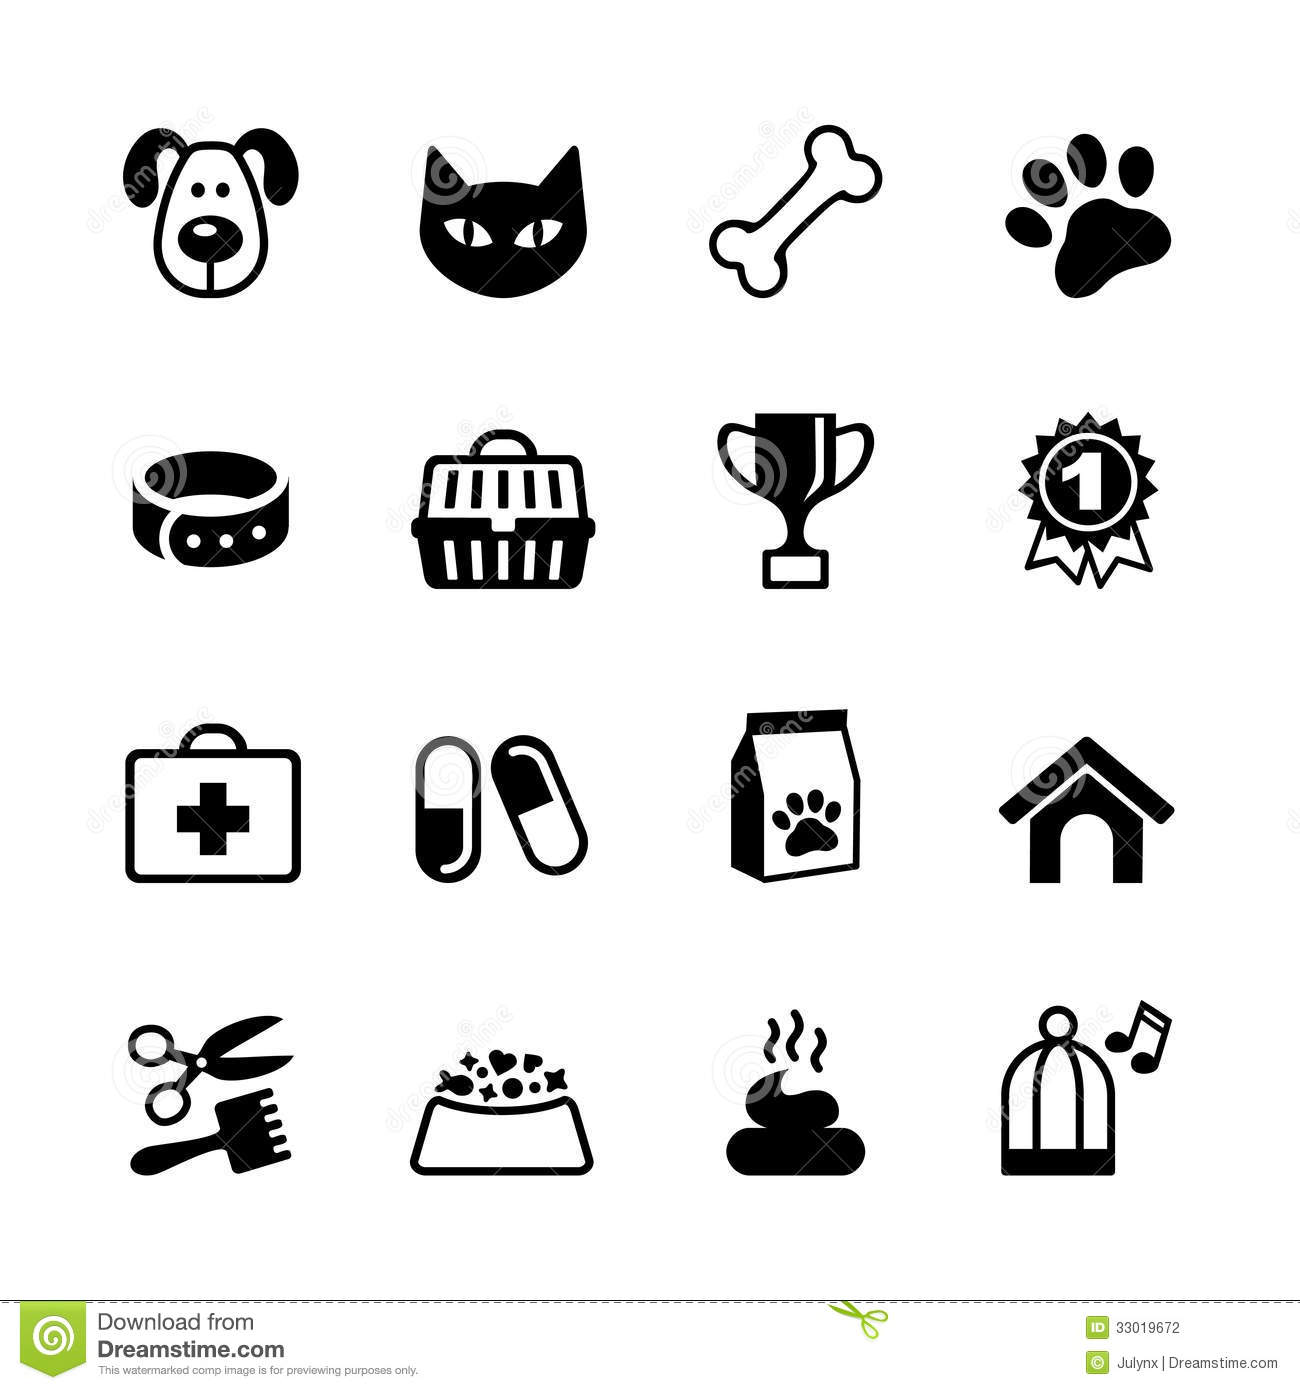 Displaying 20> Images For - Veterinarian Tools Clipart... Veterinary Tools Clip Art